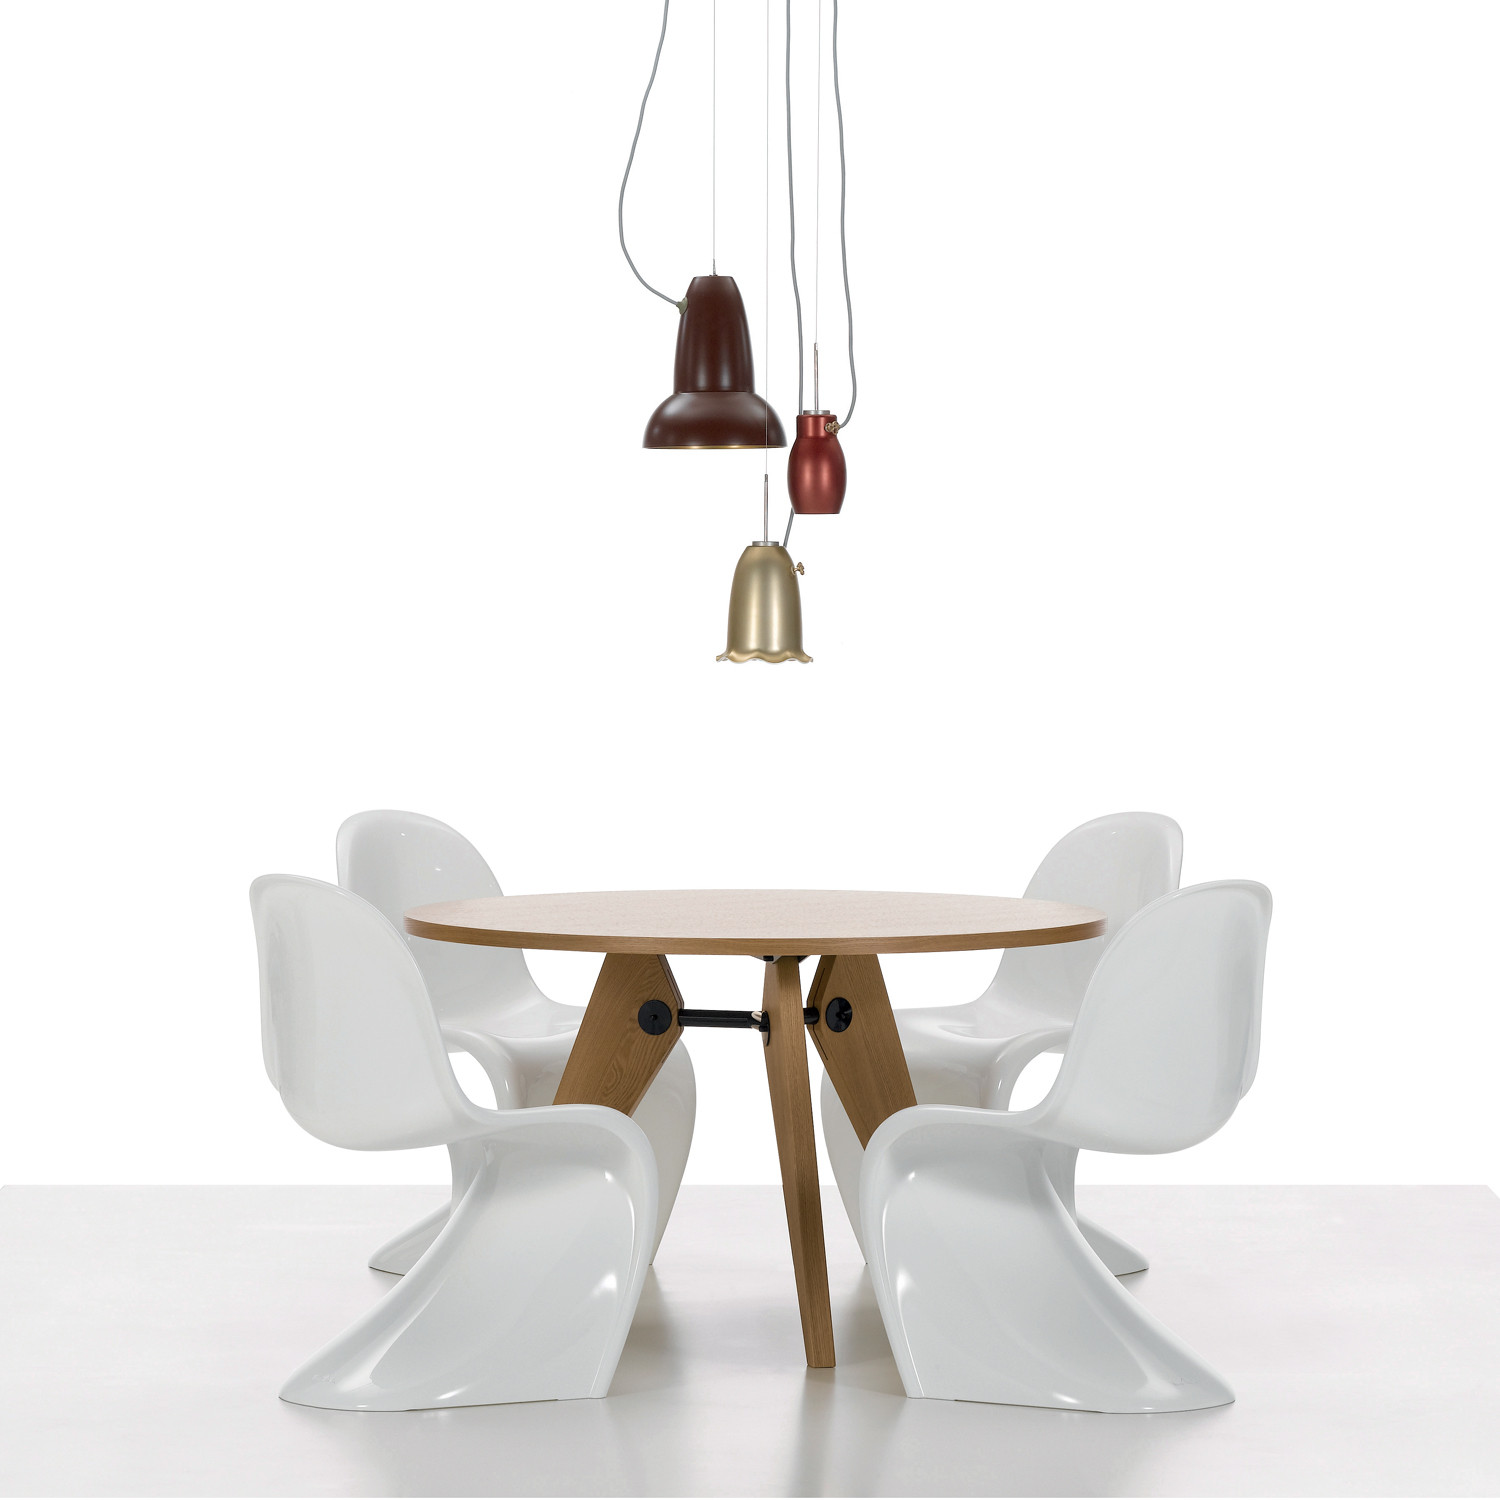 panton chair classic contemporary dining chairs apres furniture. Black Bedroom Furniture Sets. Home Design Ideas